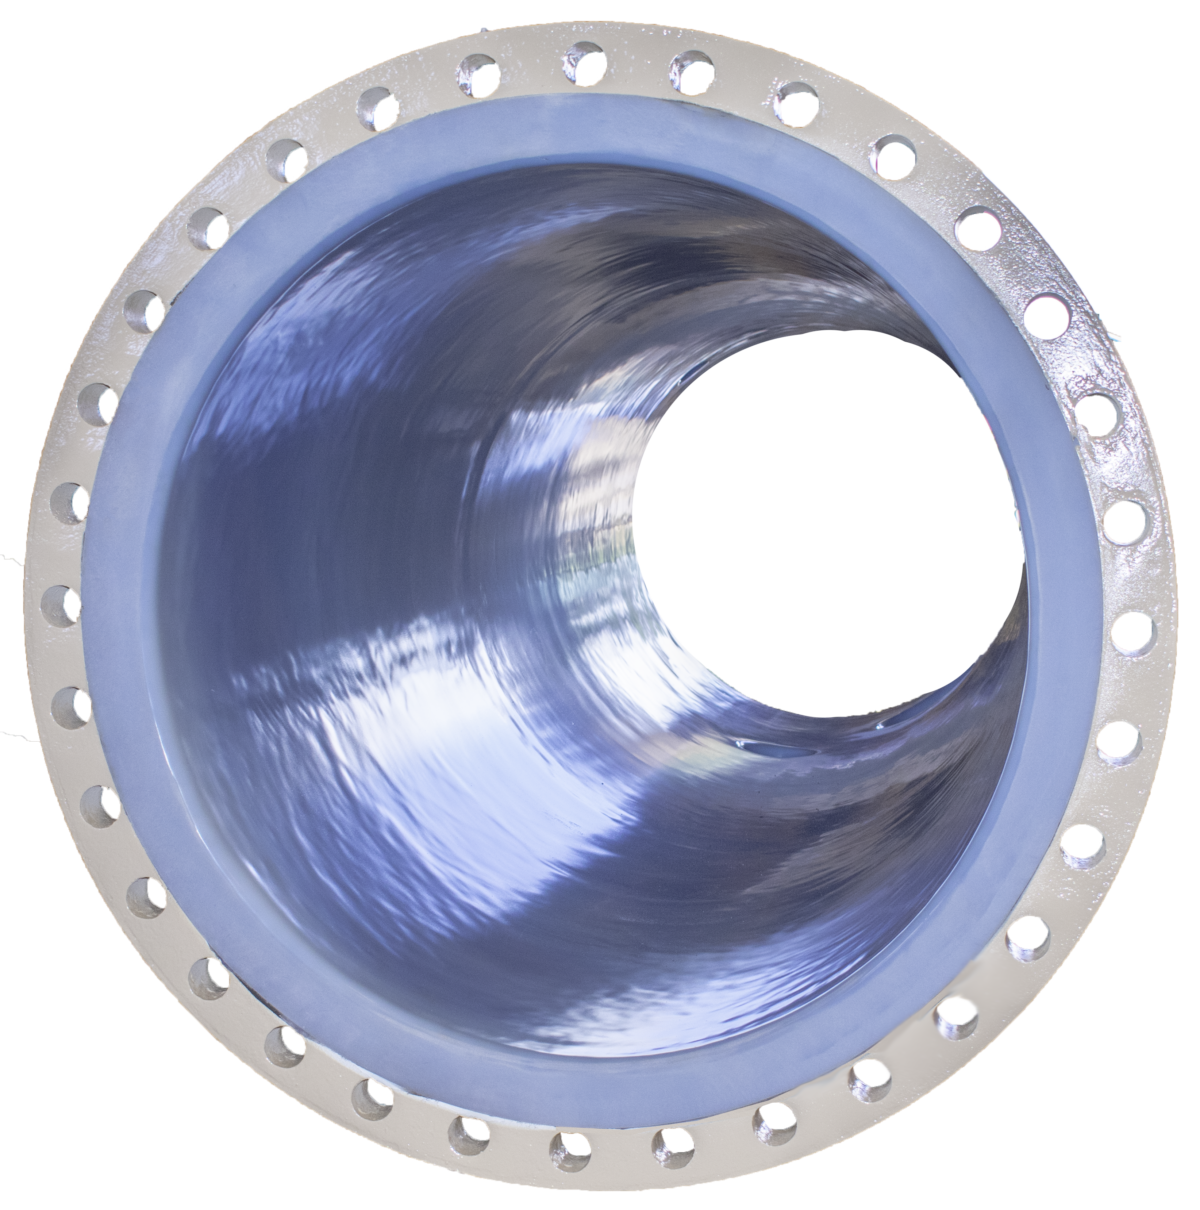 A rotolined industrial pipe